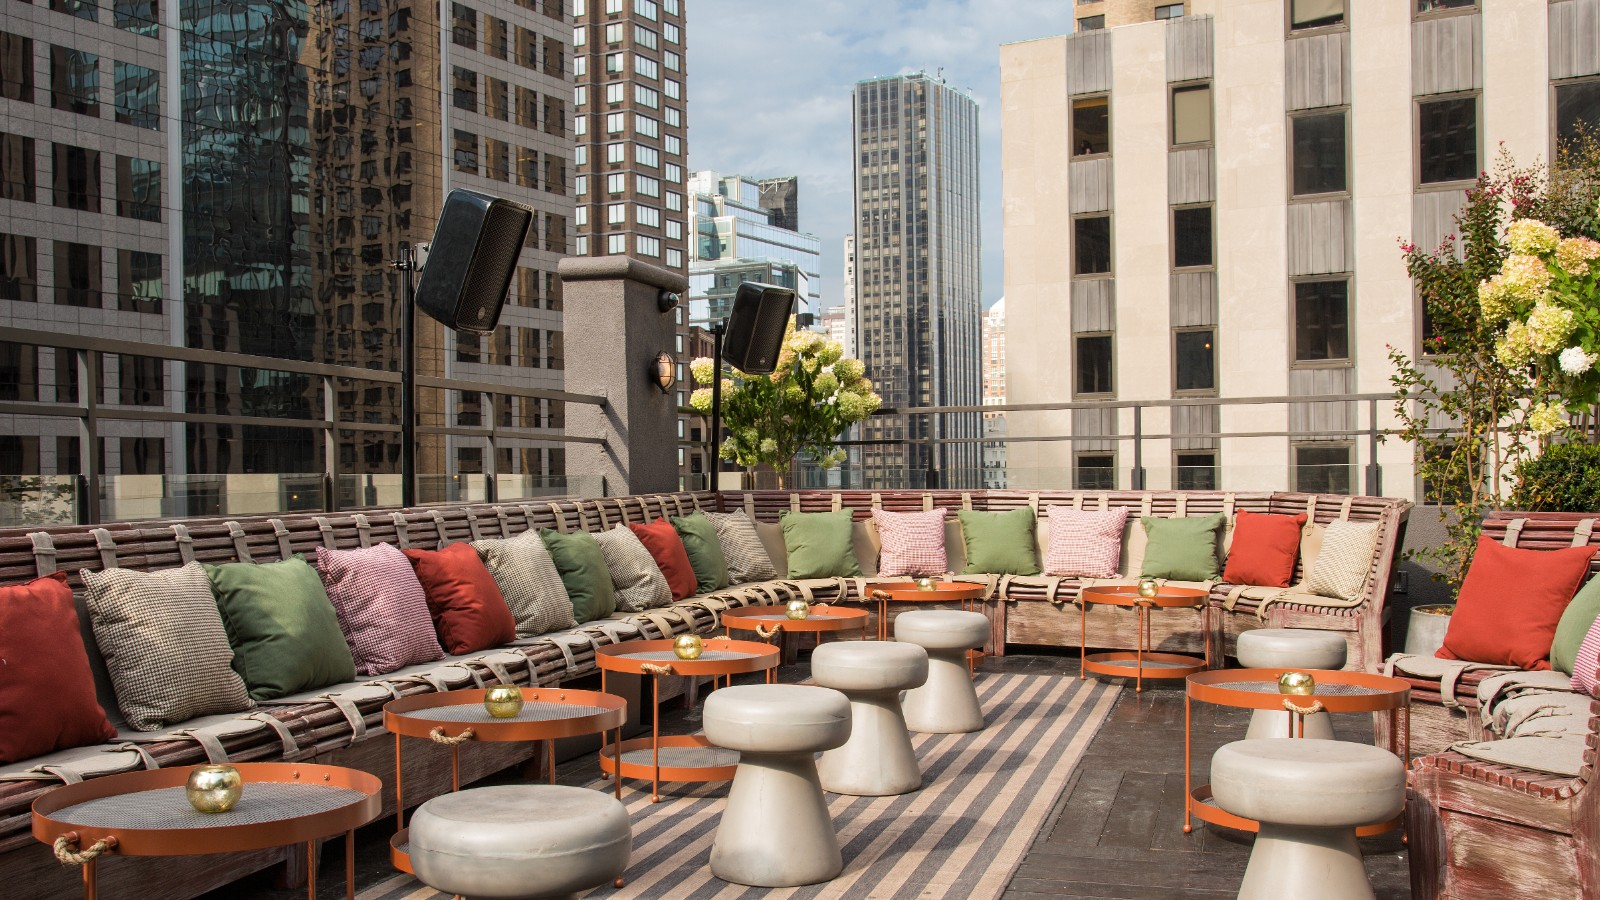 8 Best Rooftop Bars In New York City | CNN Travel